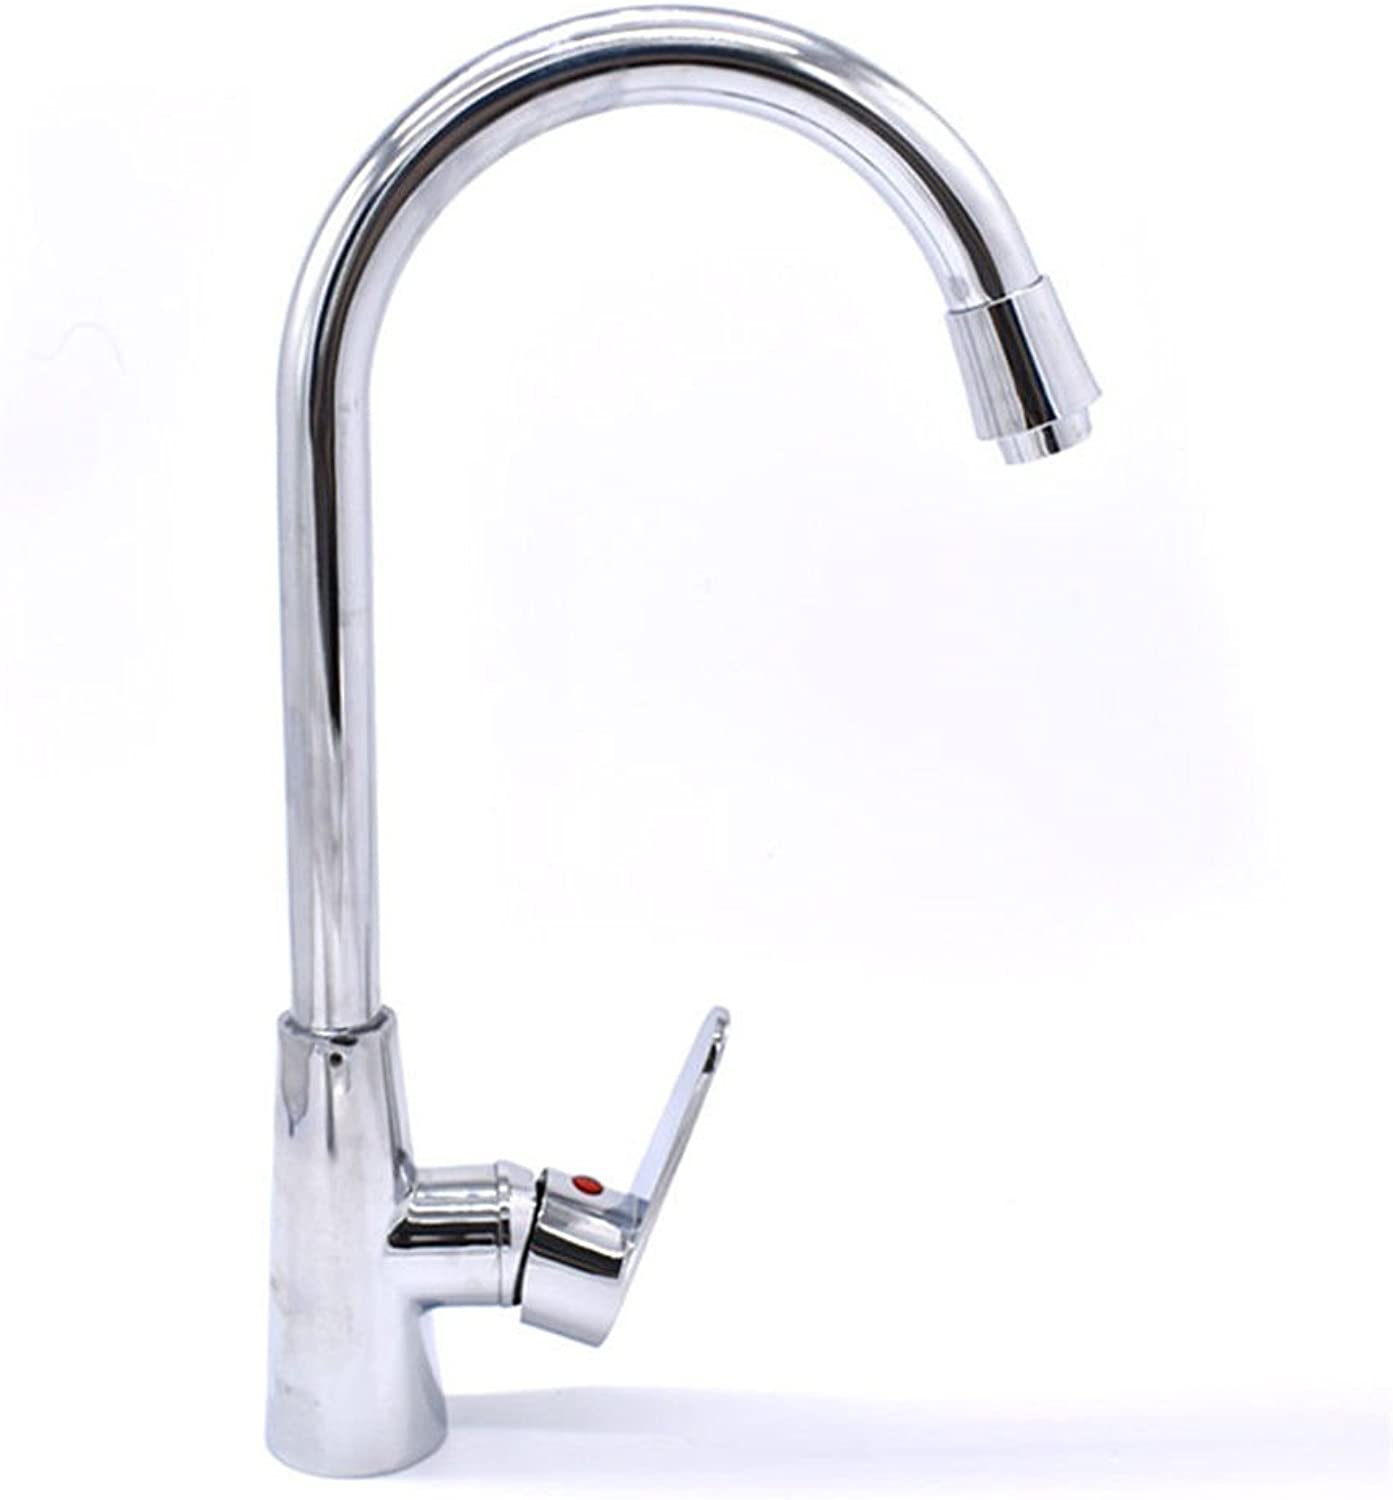 Lalaky Taps Faucet Kitchen Mixer Sink Waterfall Bathroom Mixer Basin Mixer Tap for Kitchen Bathroom and Washroom Single Handle Hot and Cold Water Copper Core Double Hole